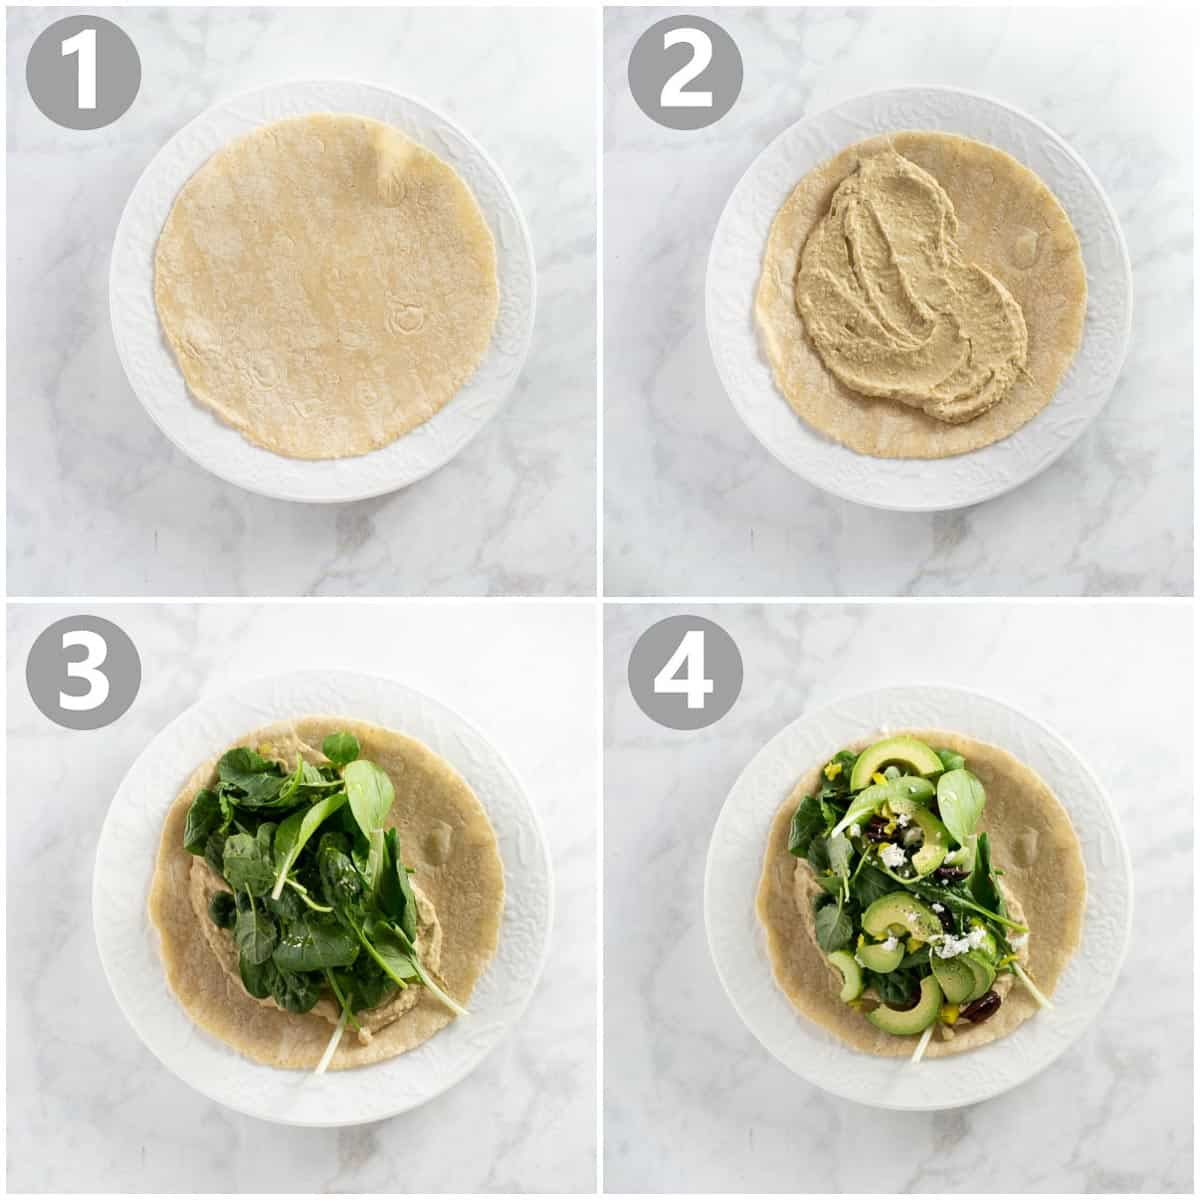 step by step photo collage shows how to make a hummus wrap with Mediterranean vegetables